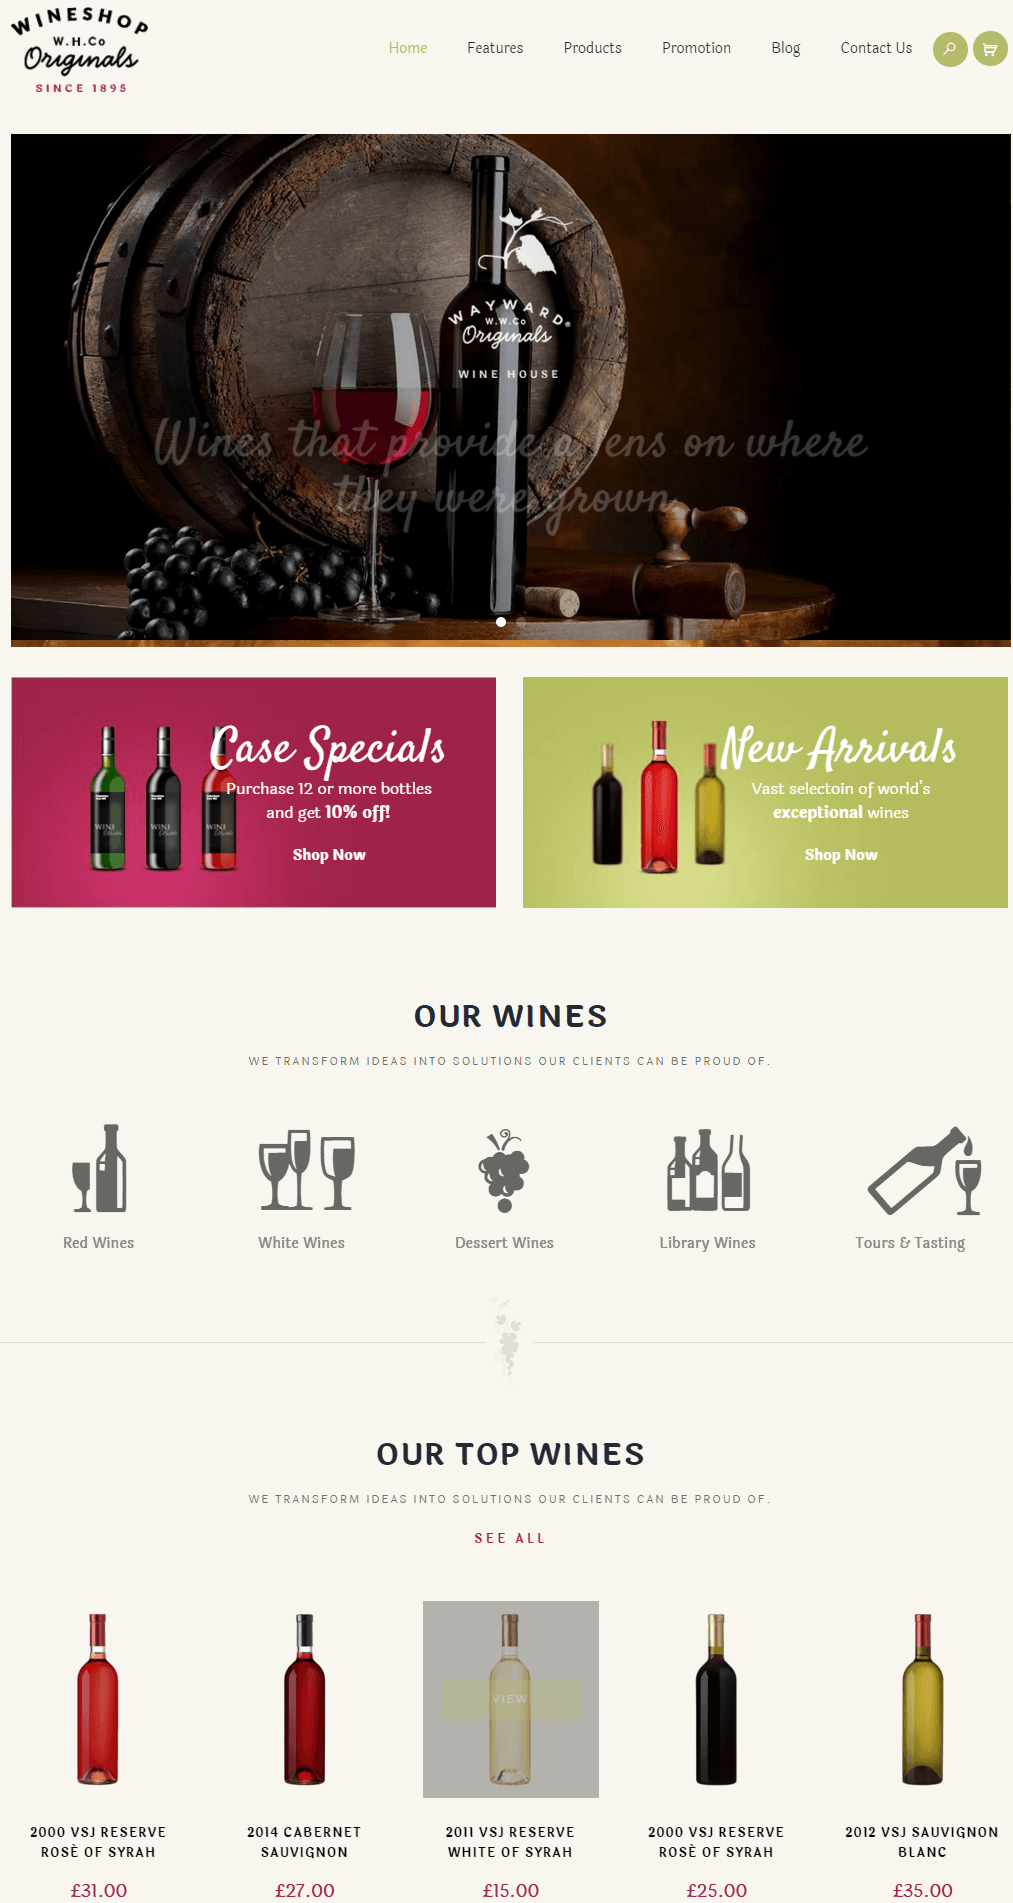 WineShop- Another front page layout